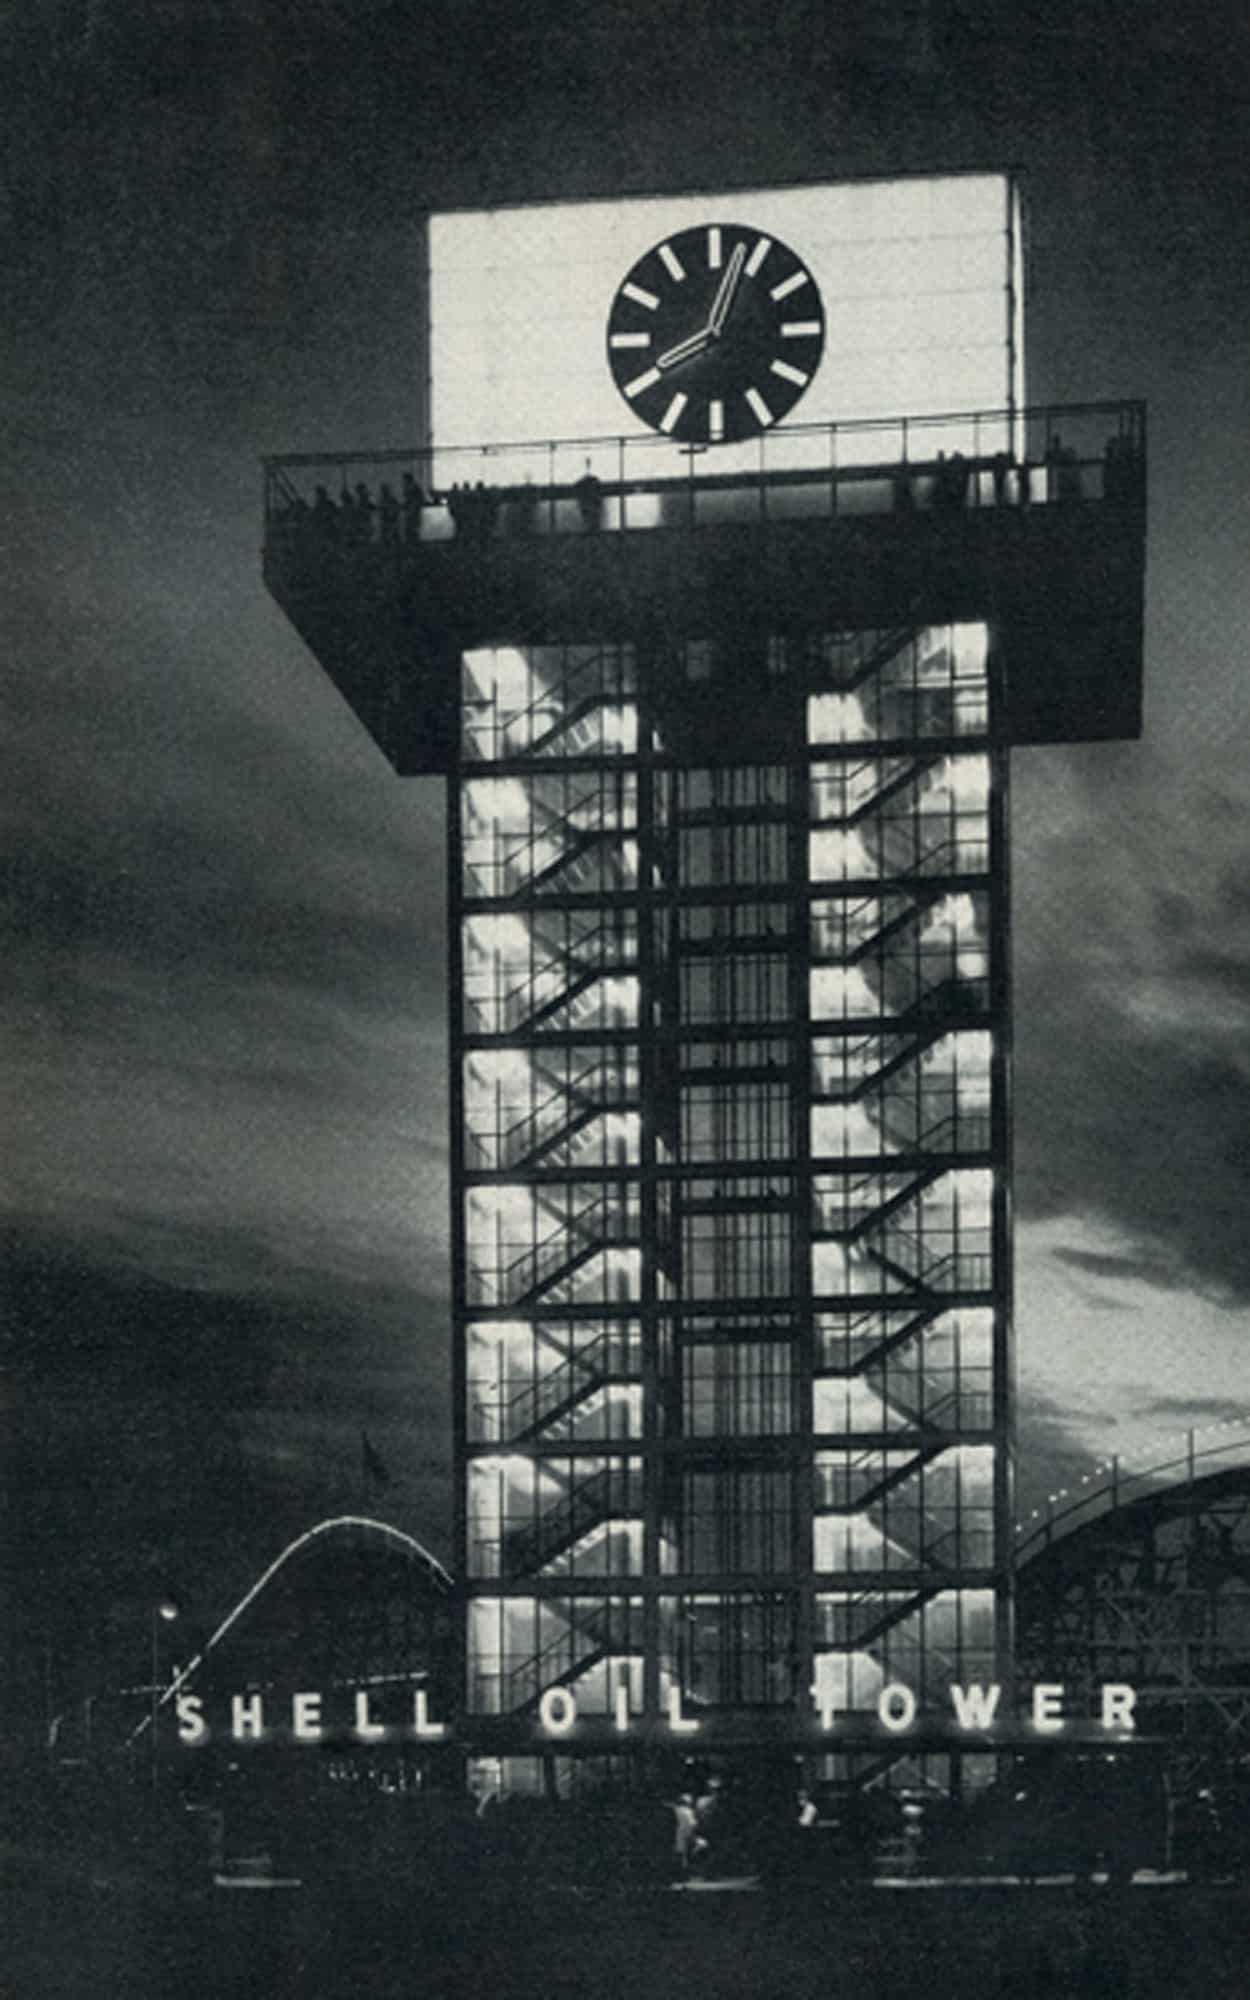 A night view with the illumination emphasizing the transparency of the tower, and the beacon-like quality of the clock (Panda Associates)